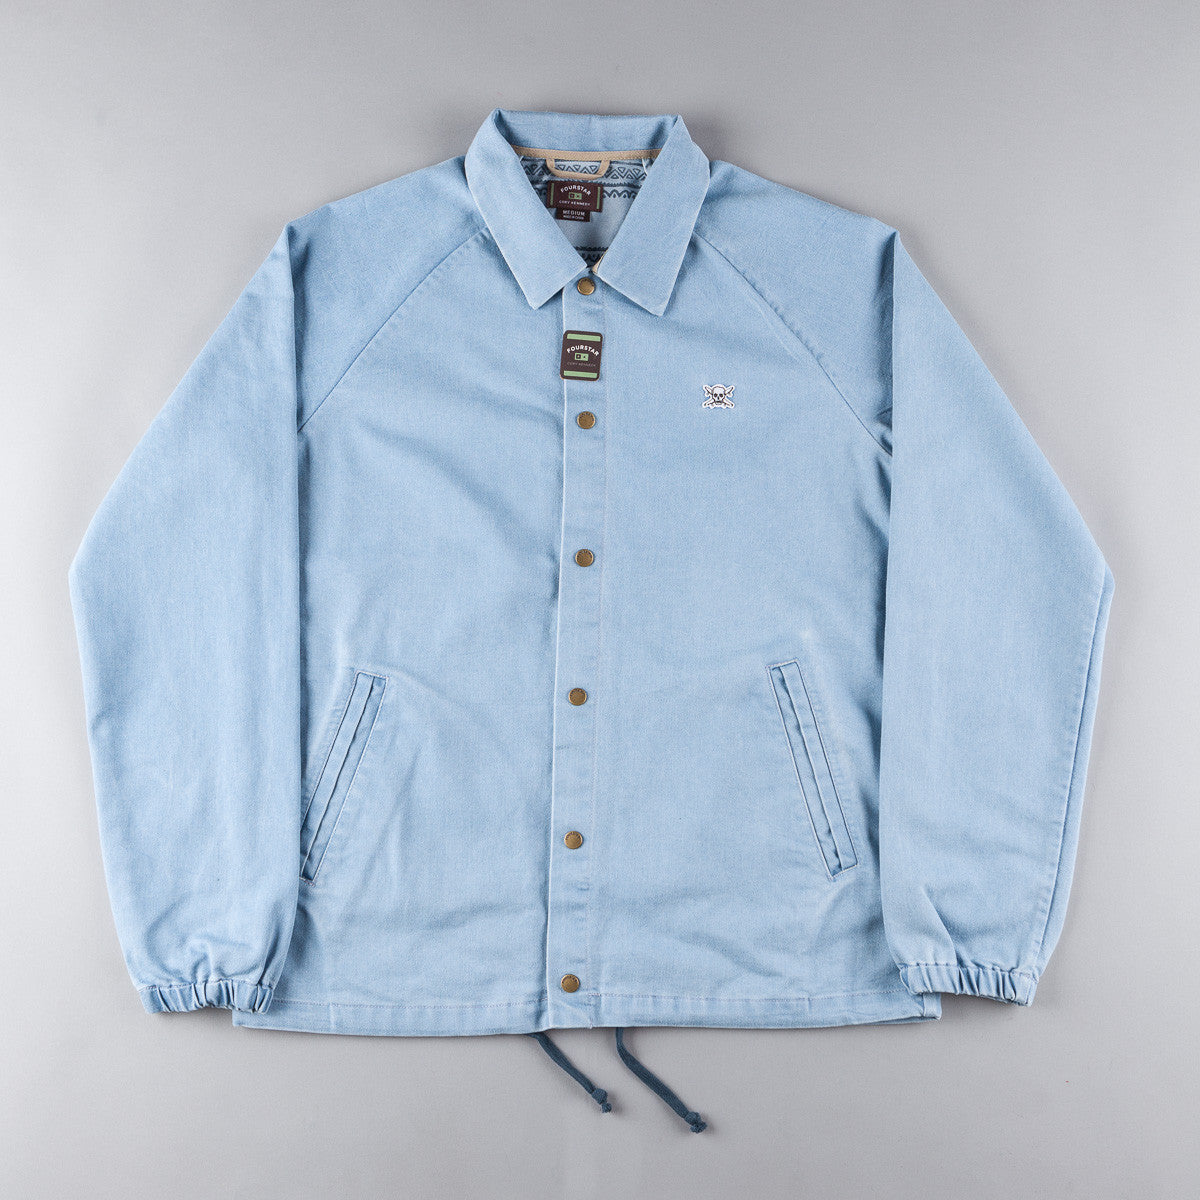 Fourstar FS116 Kennedy Denim Coach Jacket - Indigo